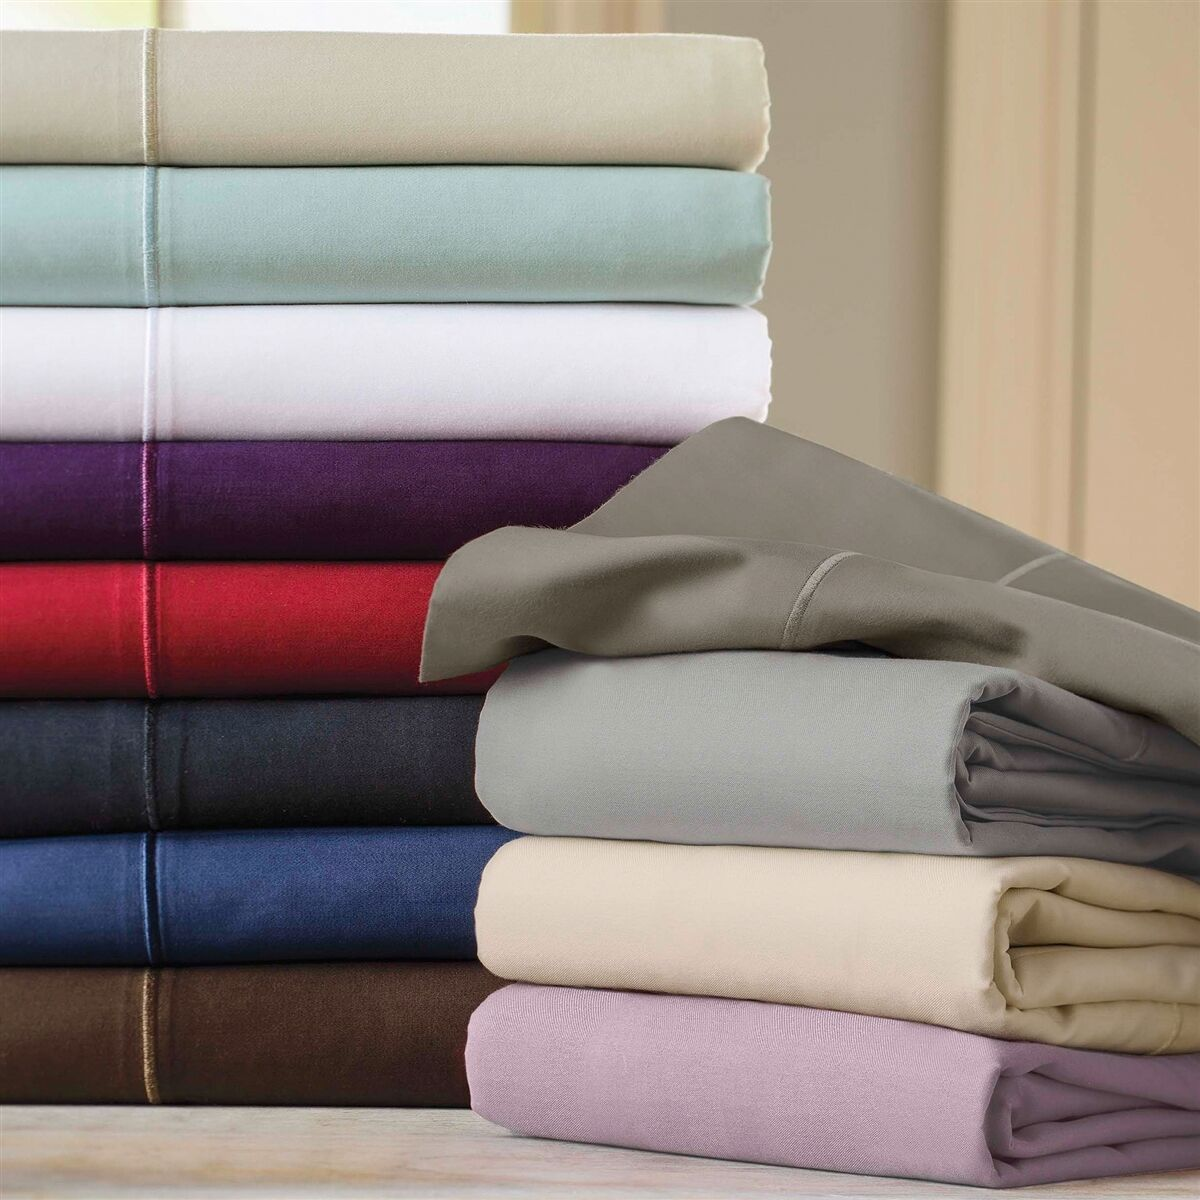 1000 TC EGYPTIAN COTTON BEDDING COLLECTION IN ALL SETS, COLORS AND SIZE